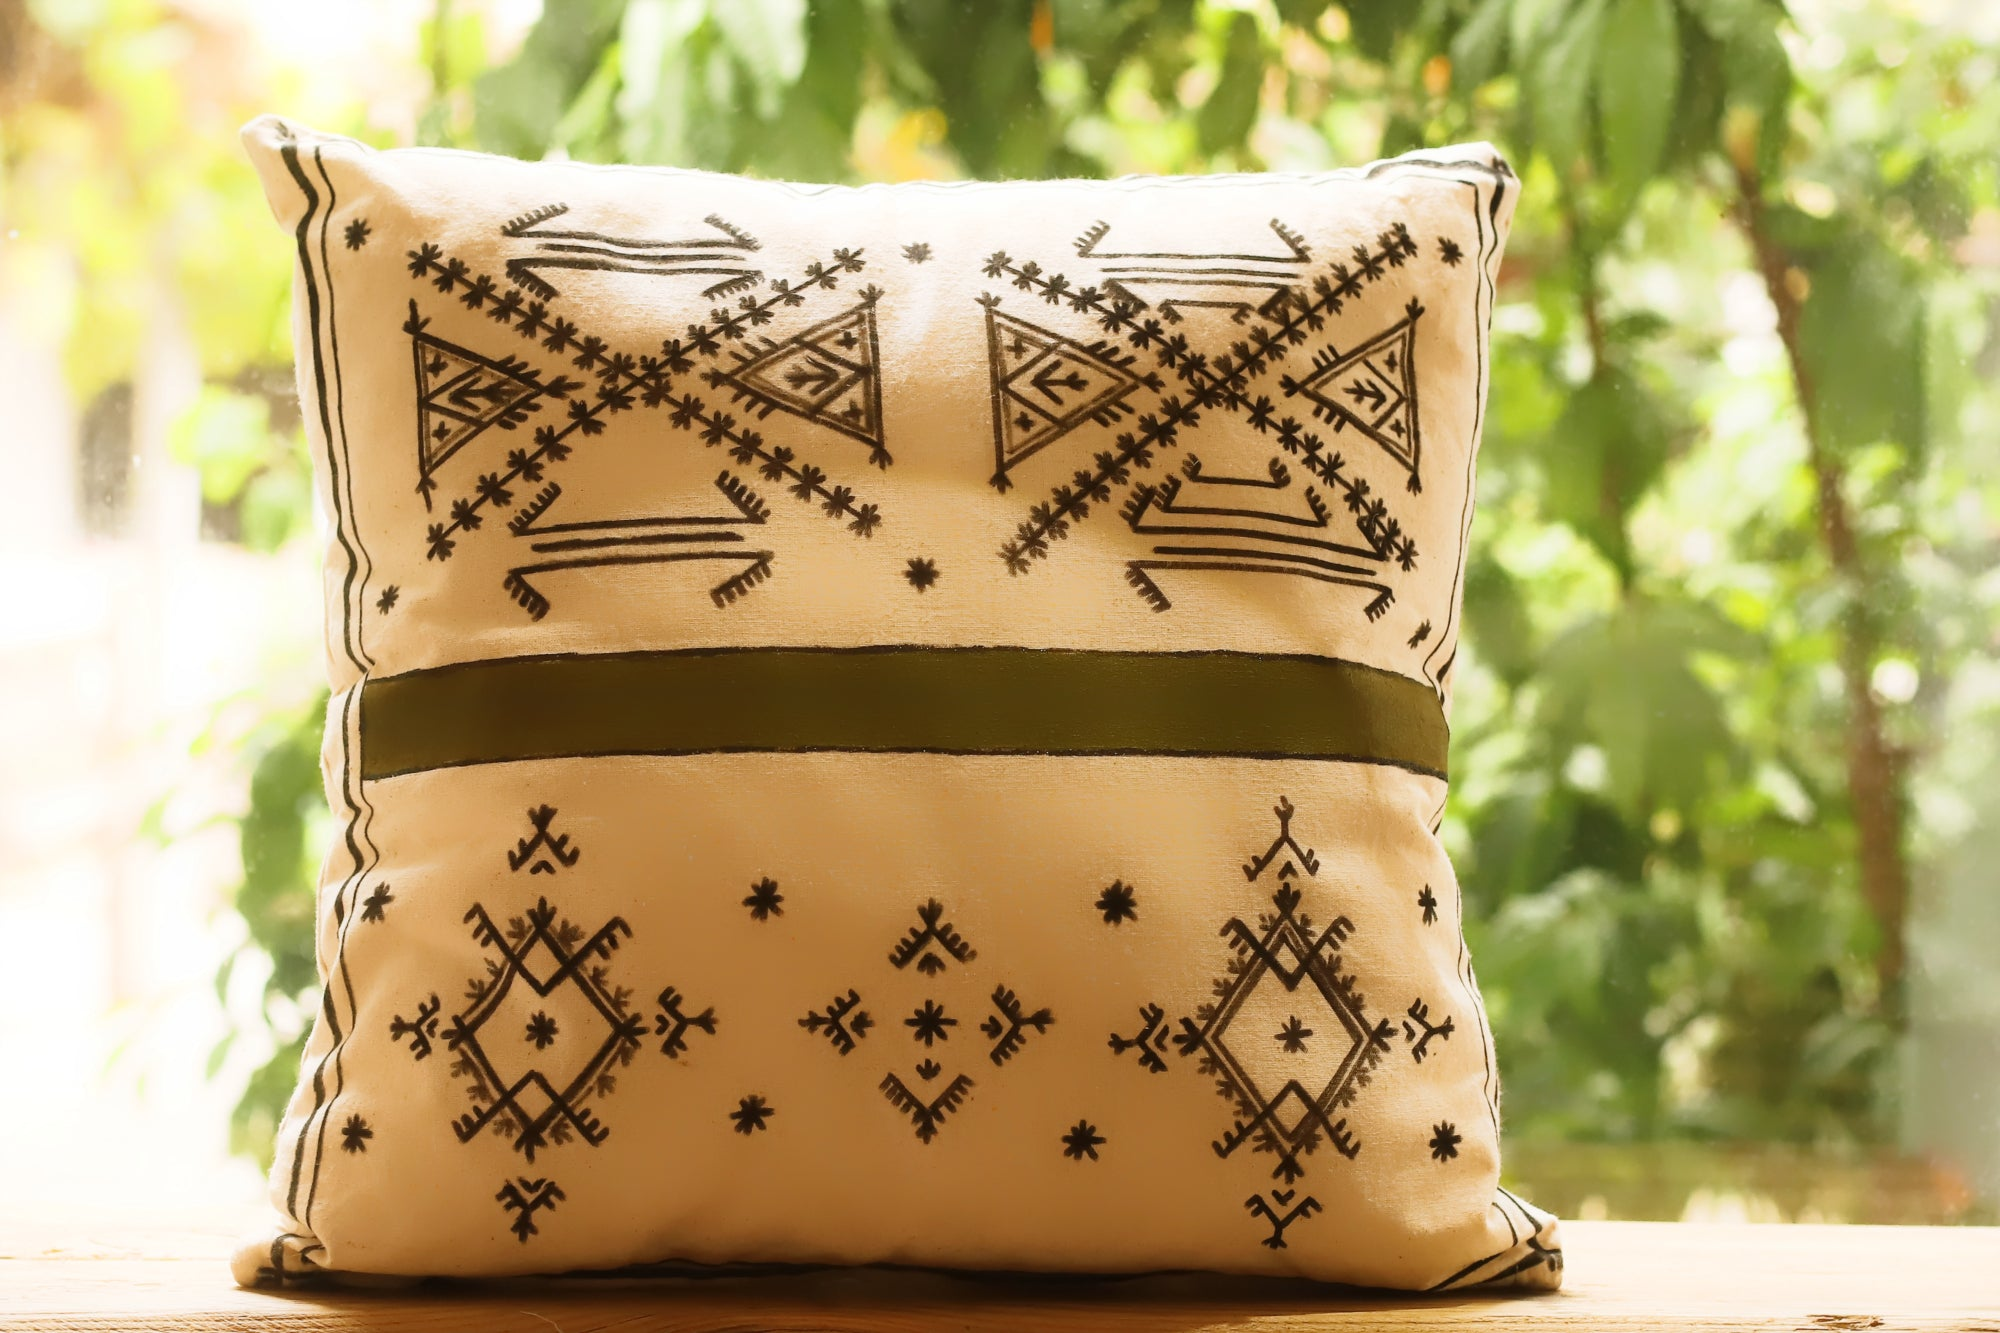 BERBER SYMBOLS - Handpainted Pillow cover by Fatimazahra Rkhami